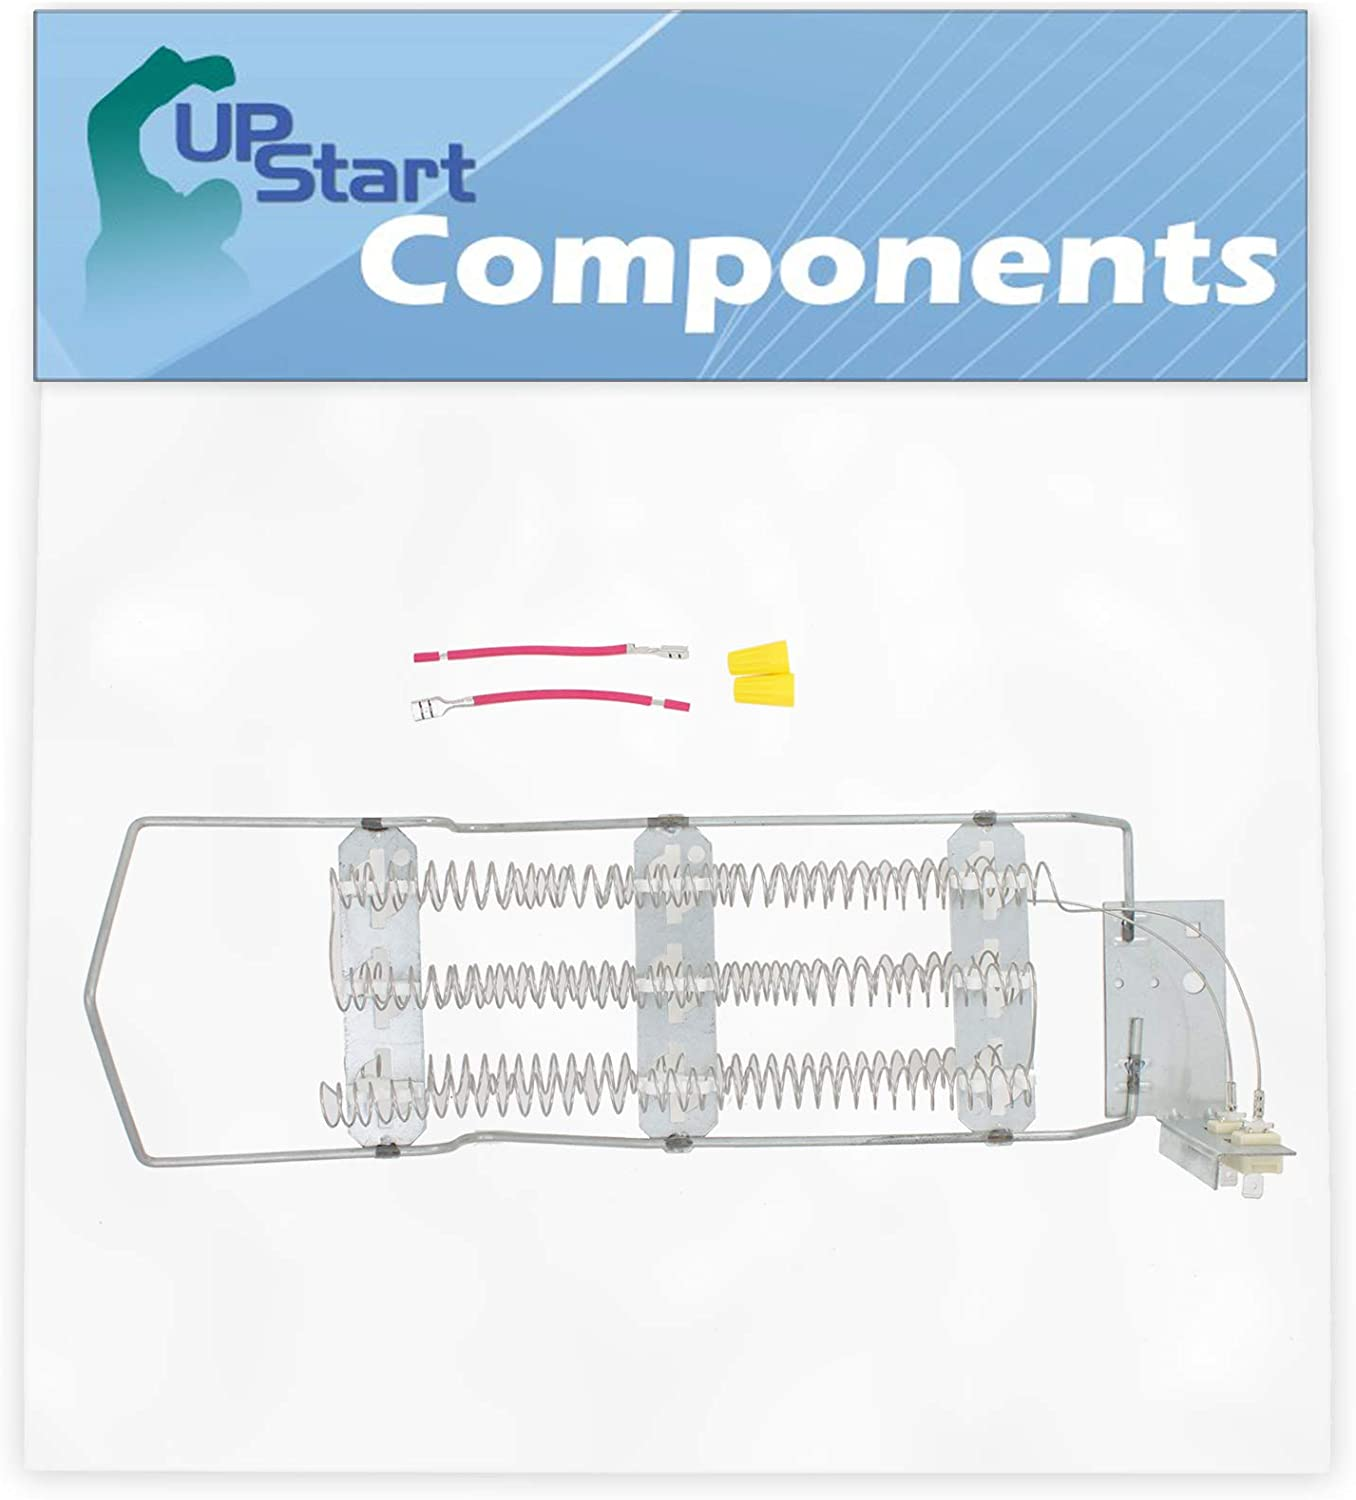 4391960 Heating Element Replacement for Kenmore/Sears 110.86873100 - Compatible with WP4391960 696579 Dryer Element